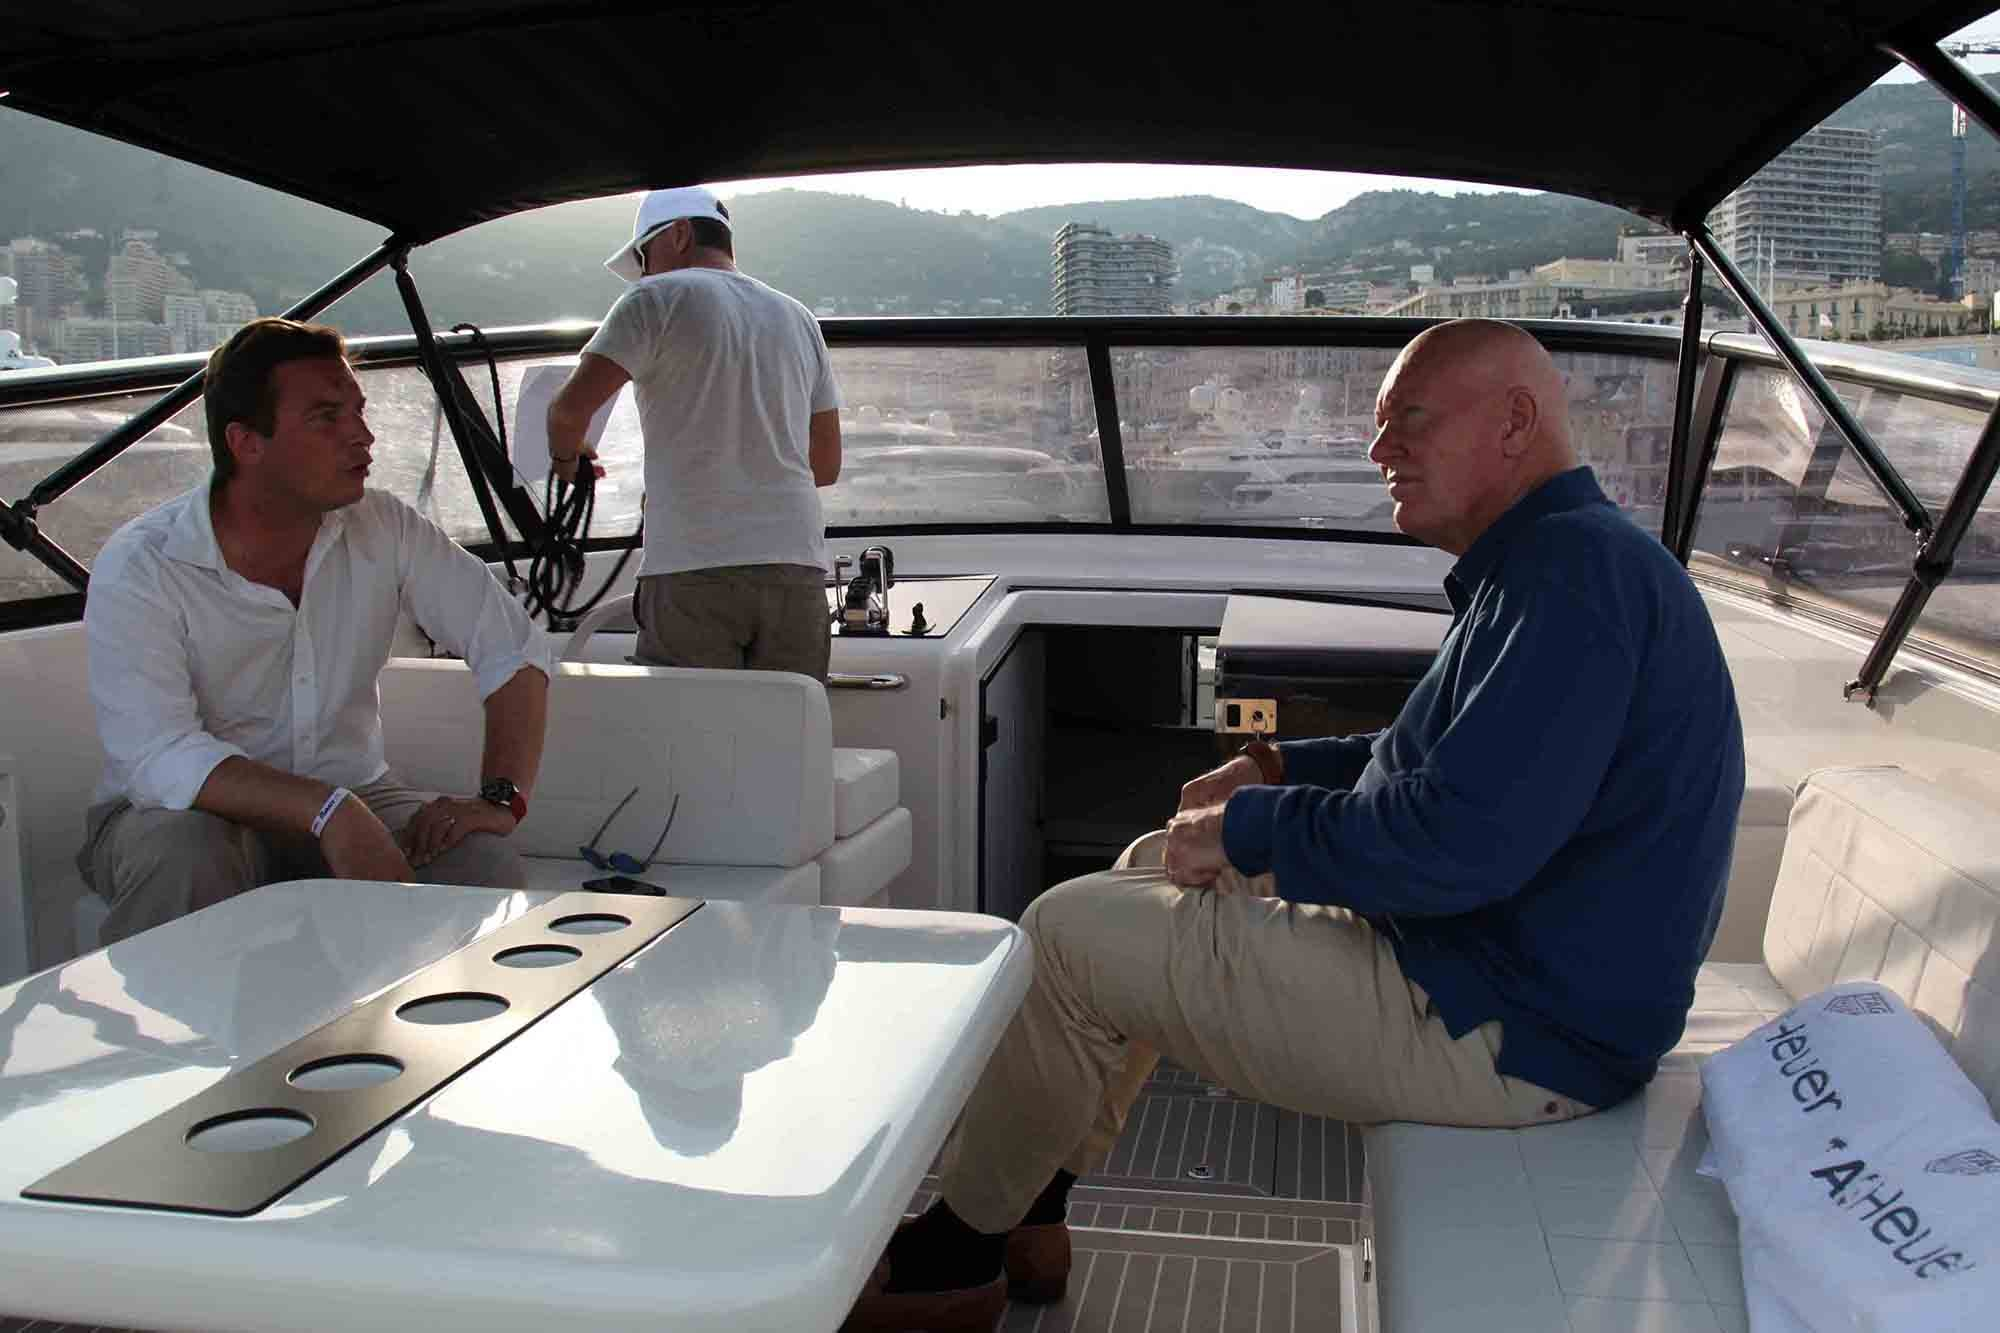 Photo Report: Behind The Scenes At The Monaco Grand Prix 2016 With TAG Heuer CEO Jean-Claude Biver Photo Report: Behind The Scenes At The Monaco Grand Prix 2016 With TAG Heuer CEO Jean-Claude Biver 3